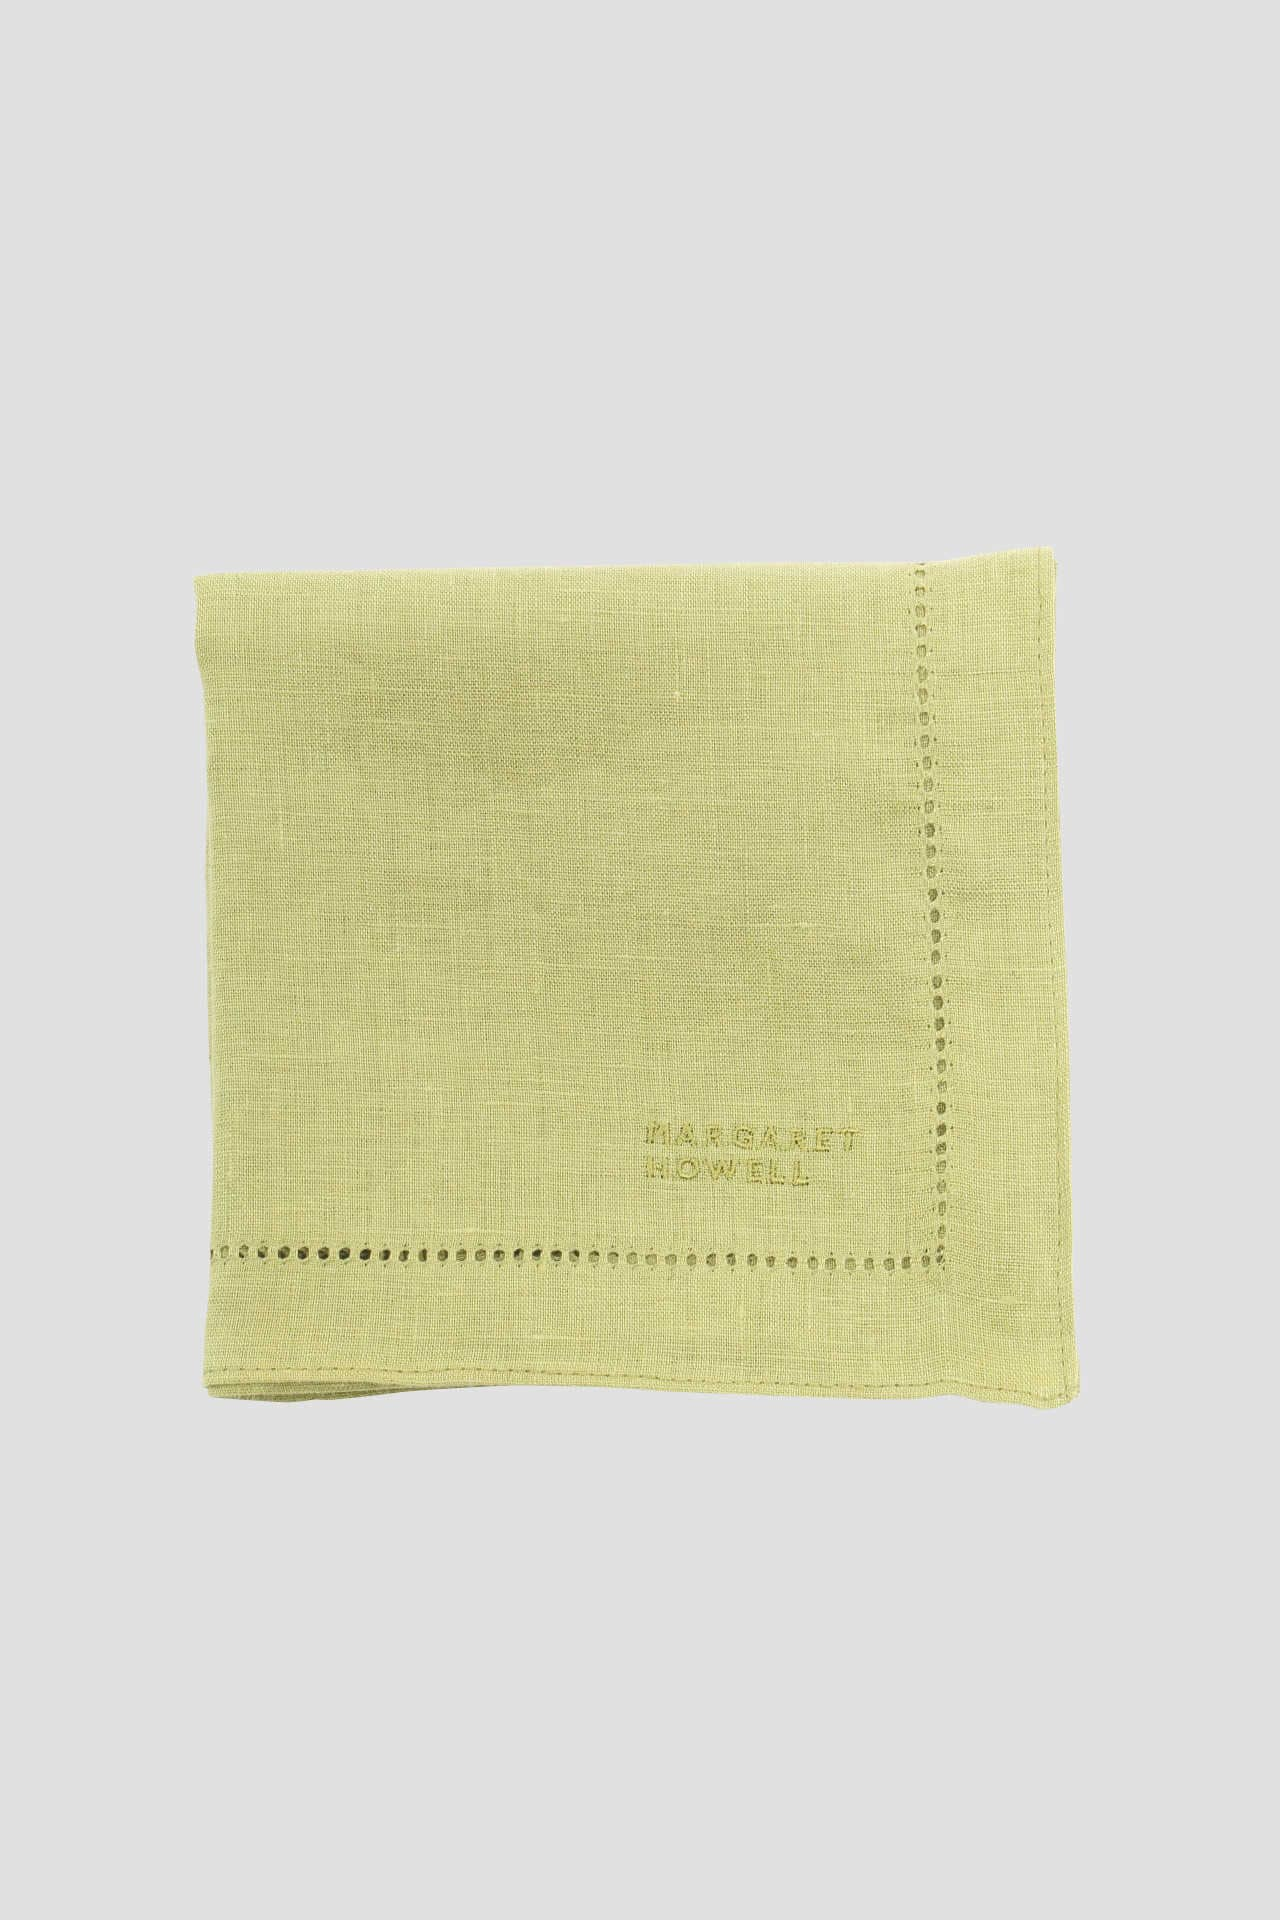 EMBROIDERED HANKY2